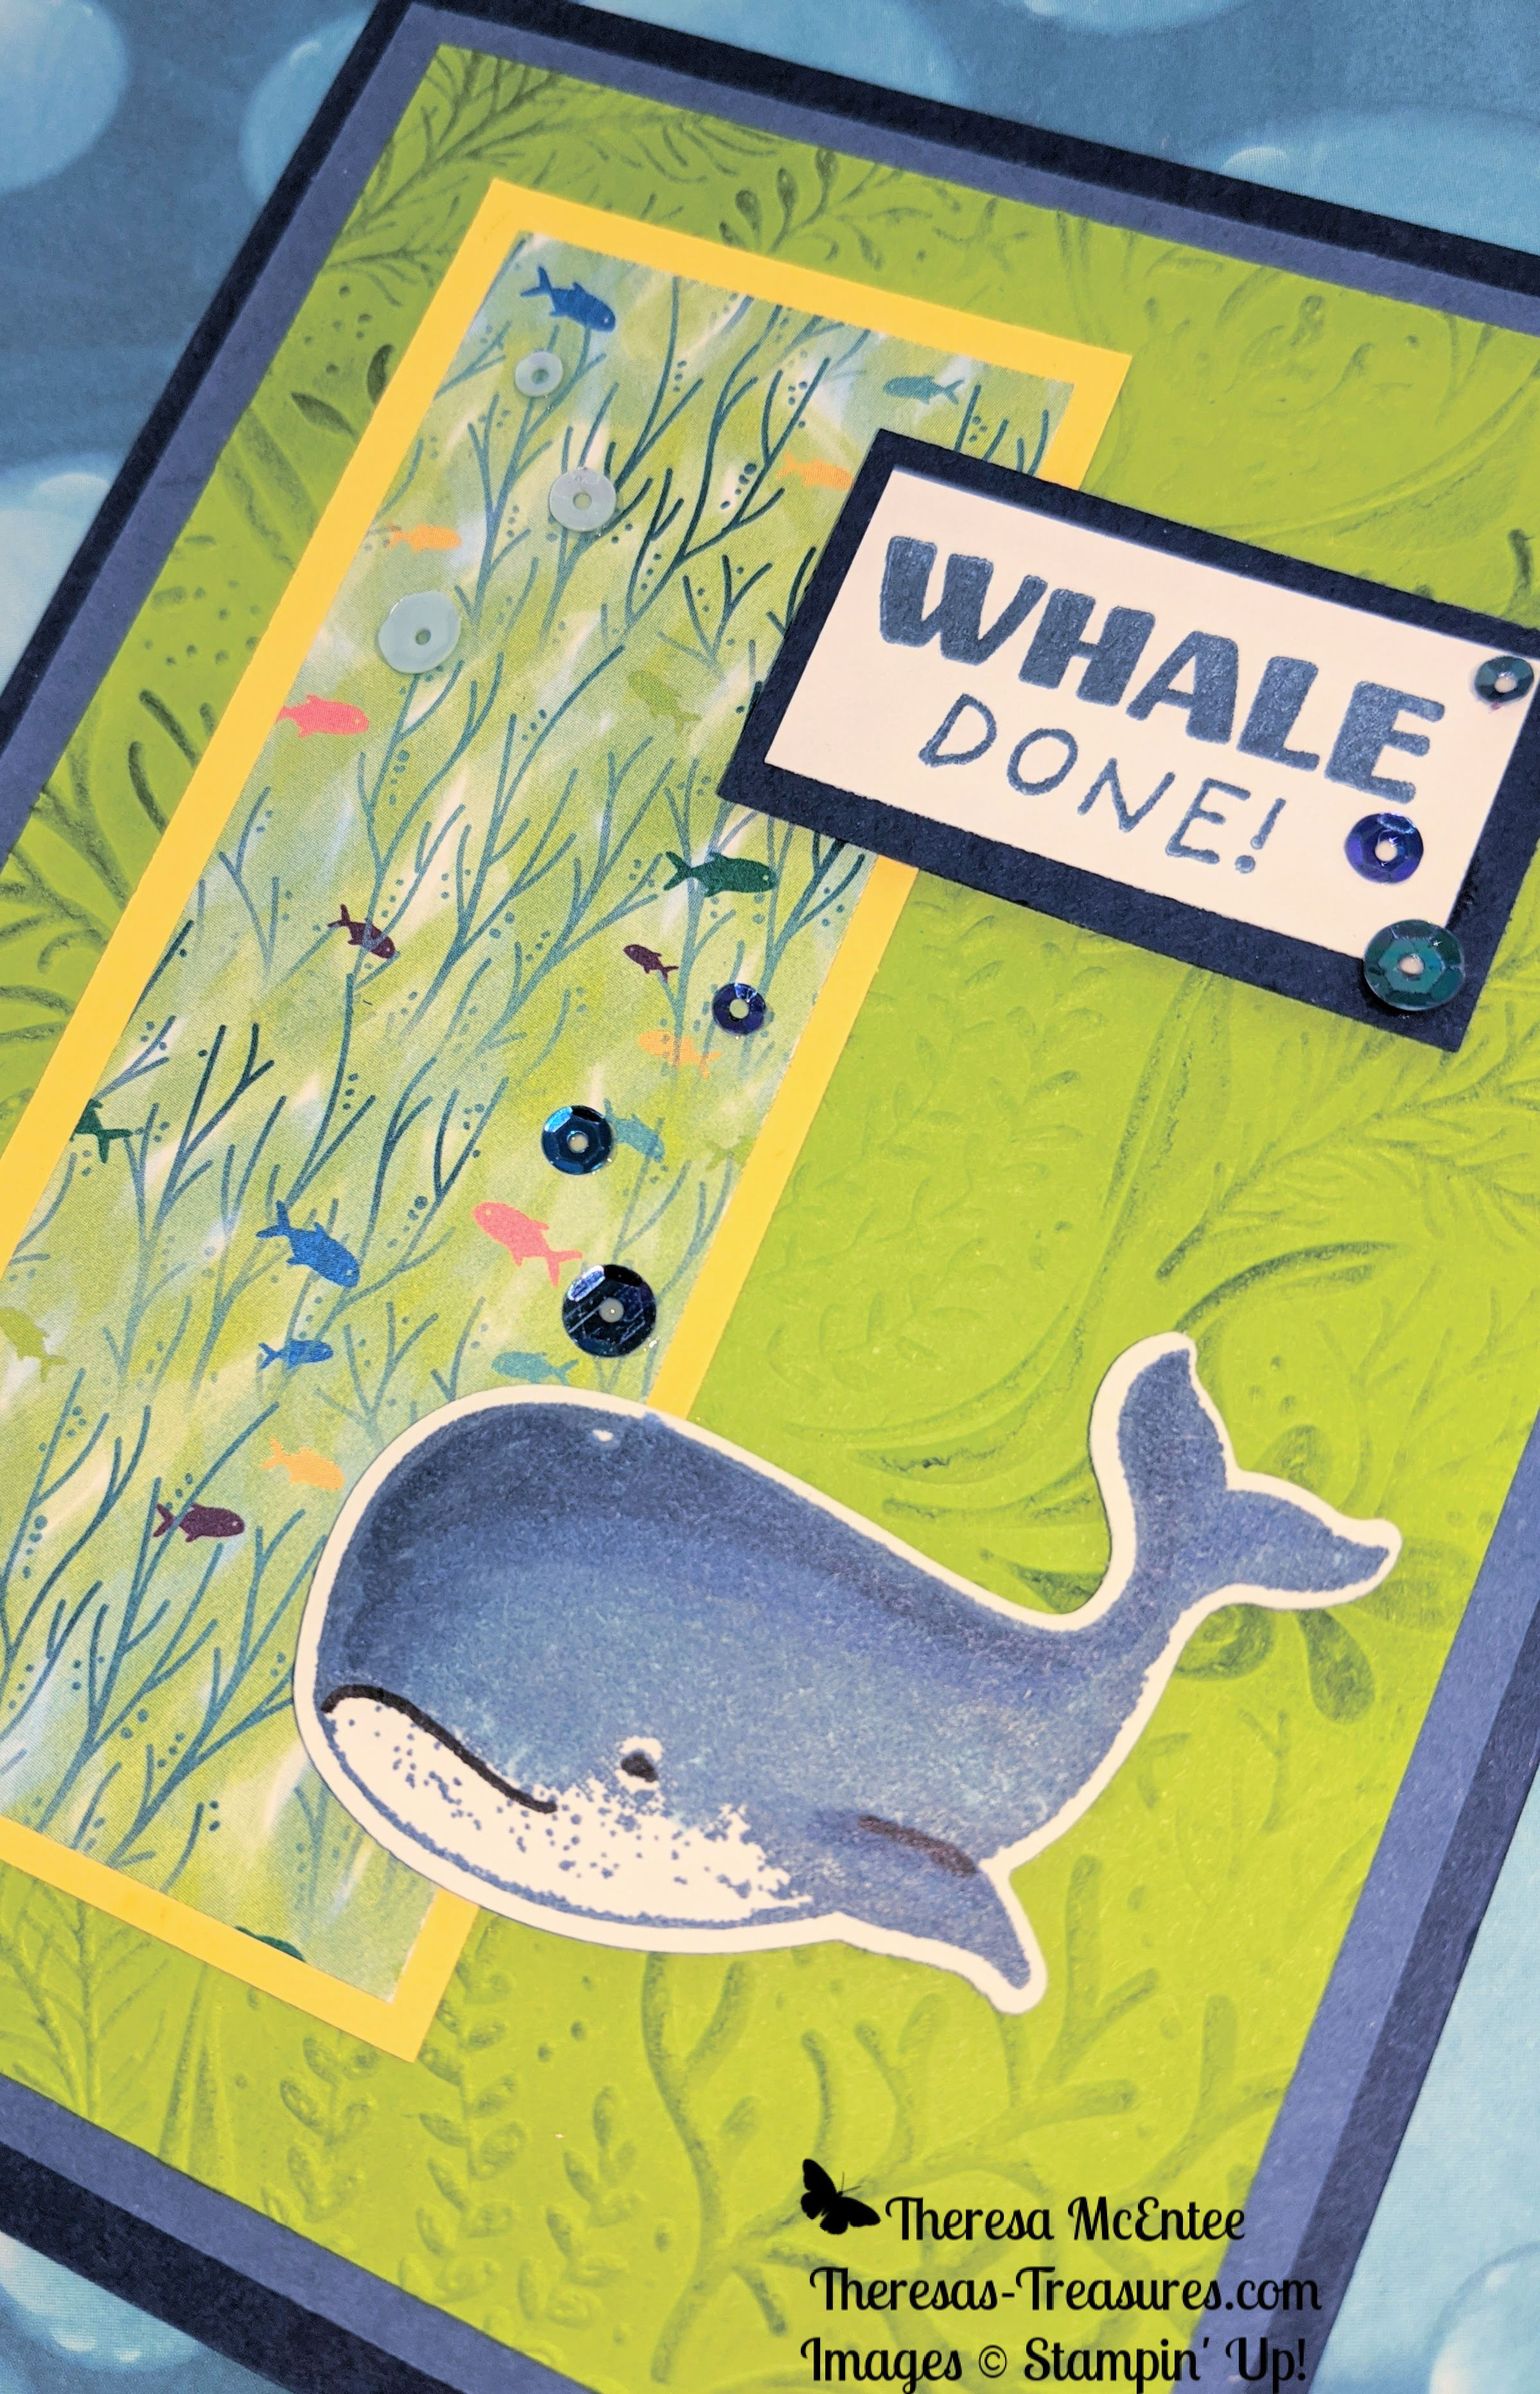 Gone fishing with whale done congratulations